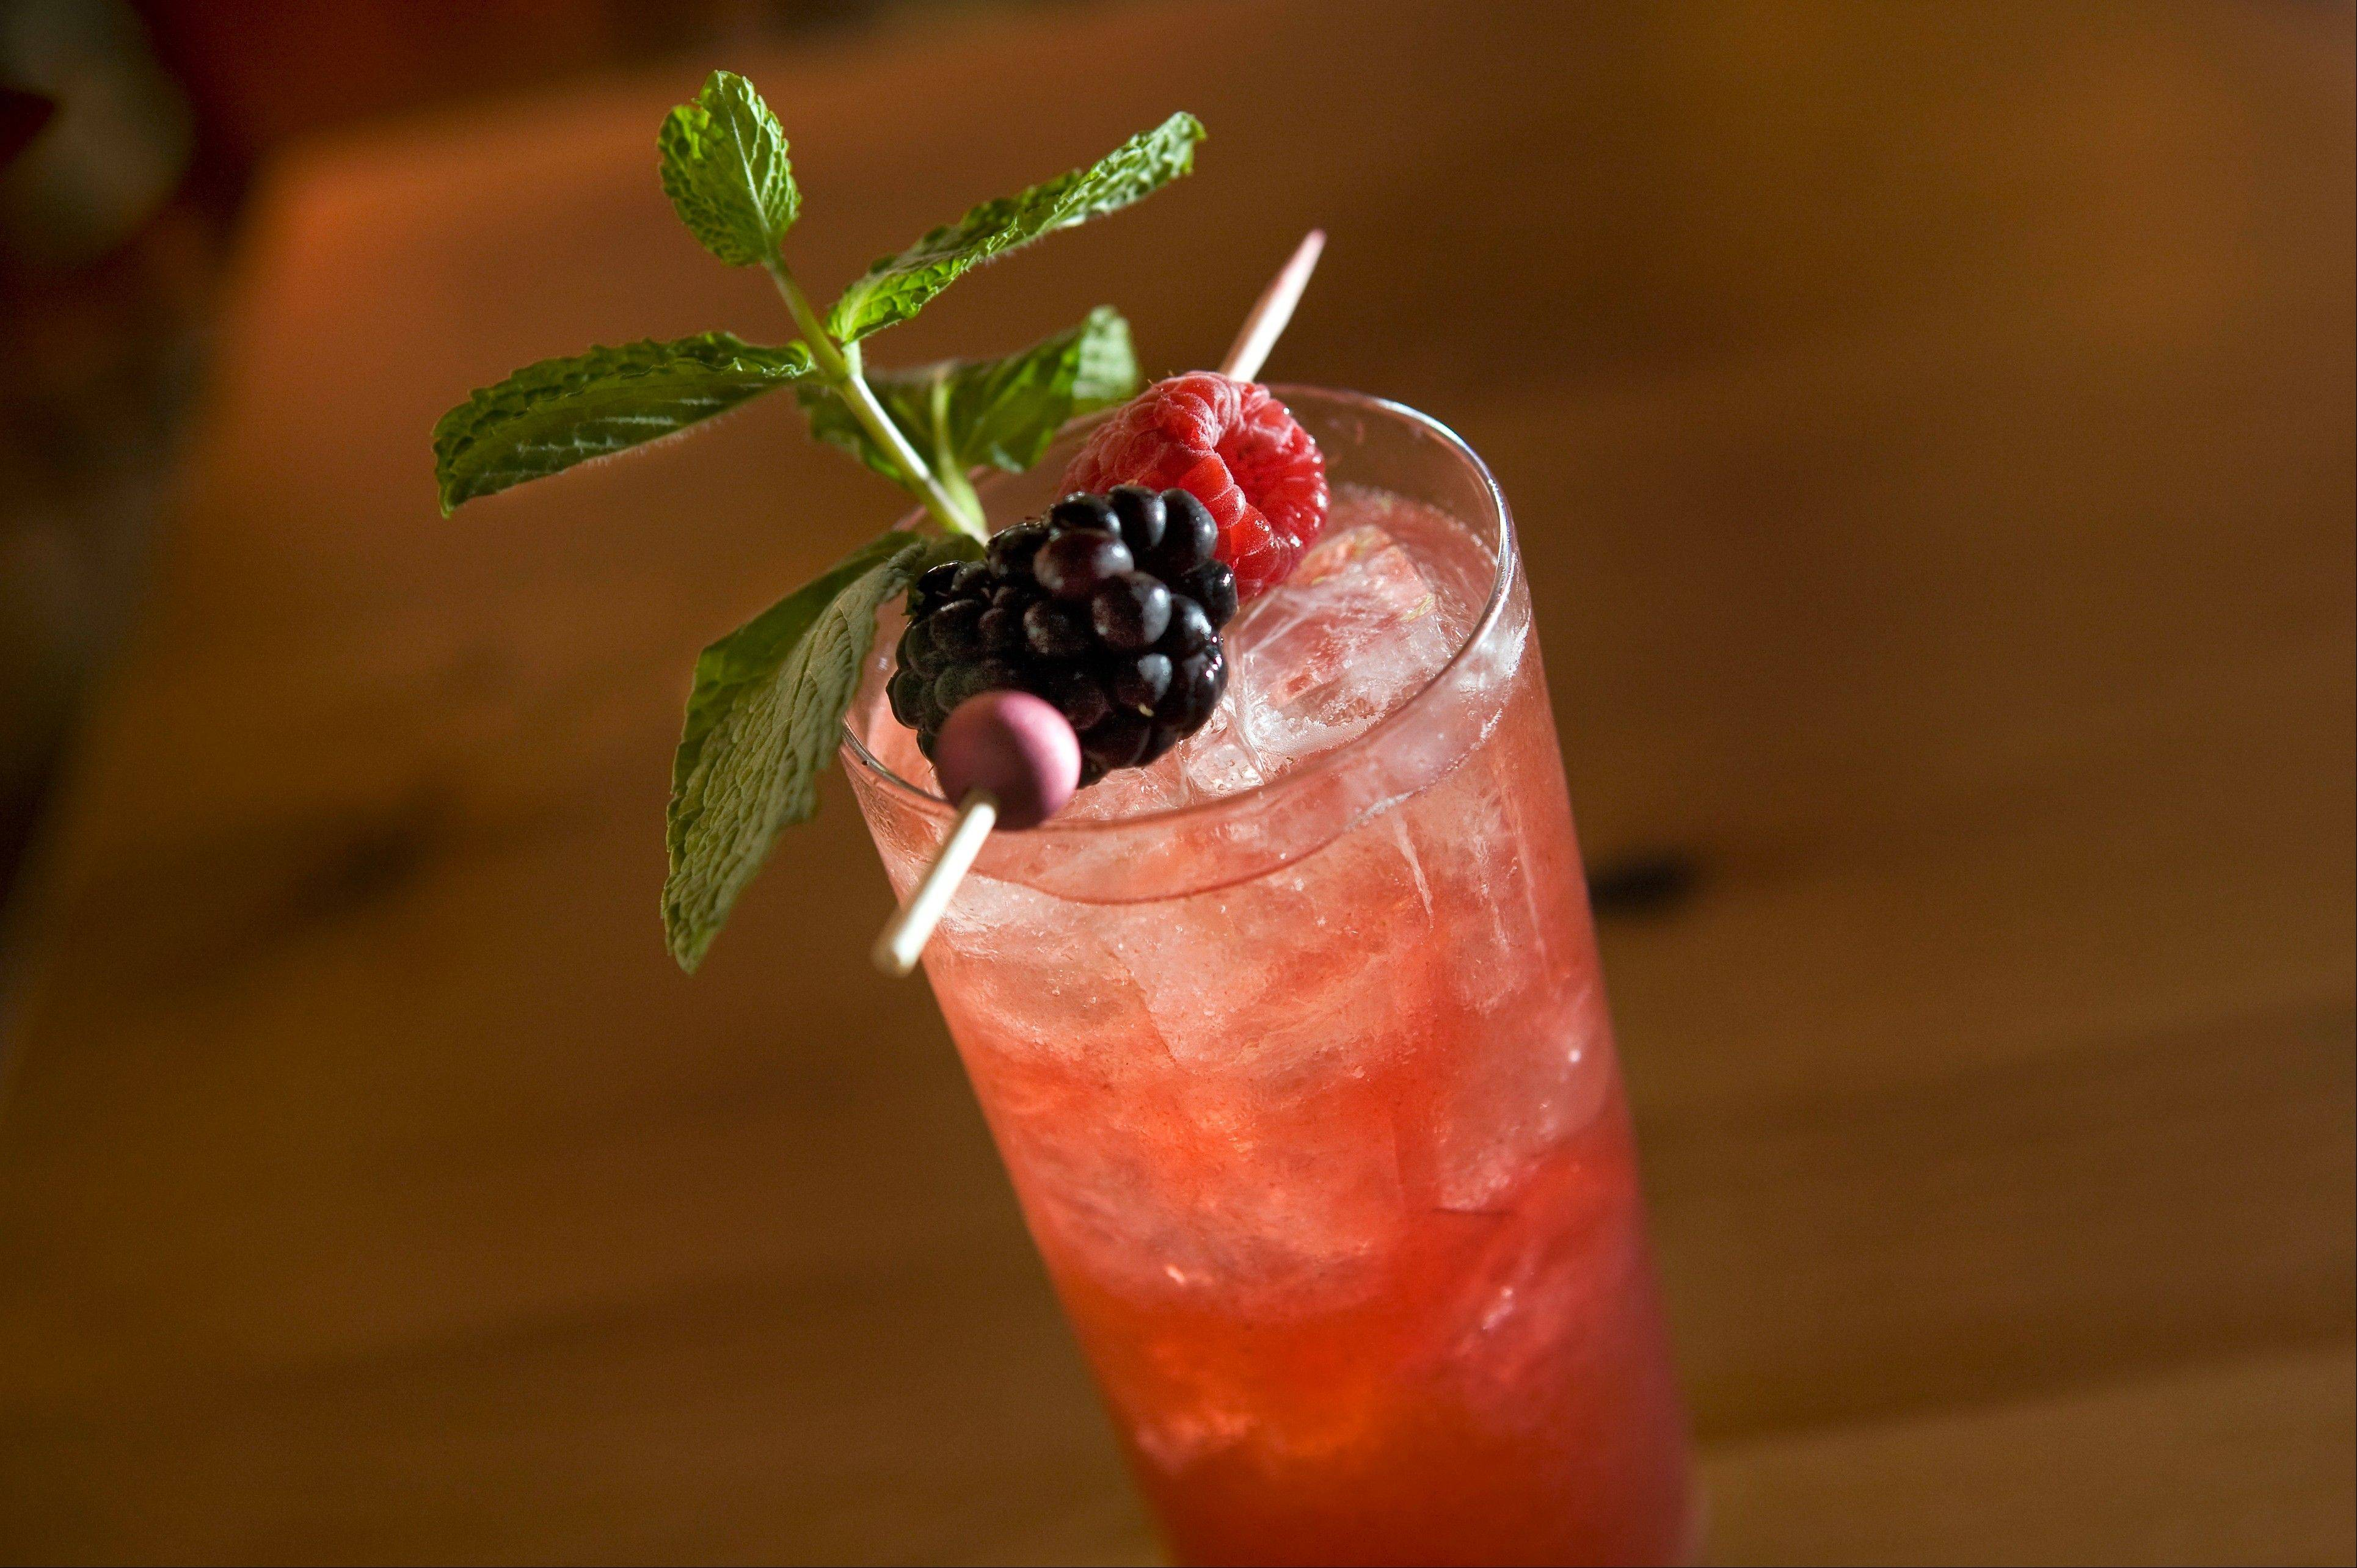 In honor of the Stanley Cup finals, Rosebud is mixing up a Blackhawks Berry Mojito at select restaurants.